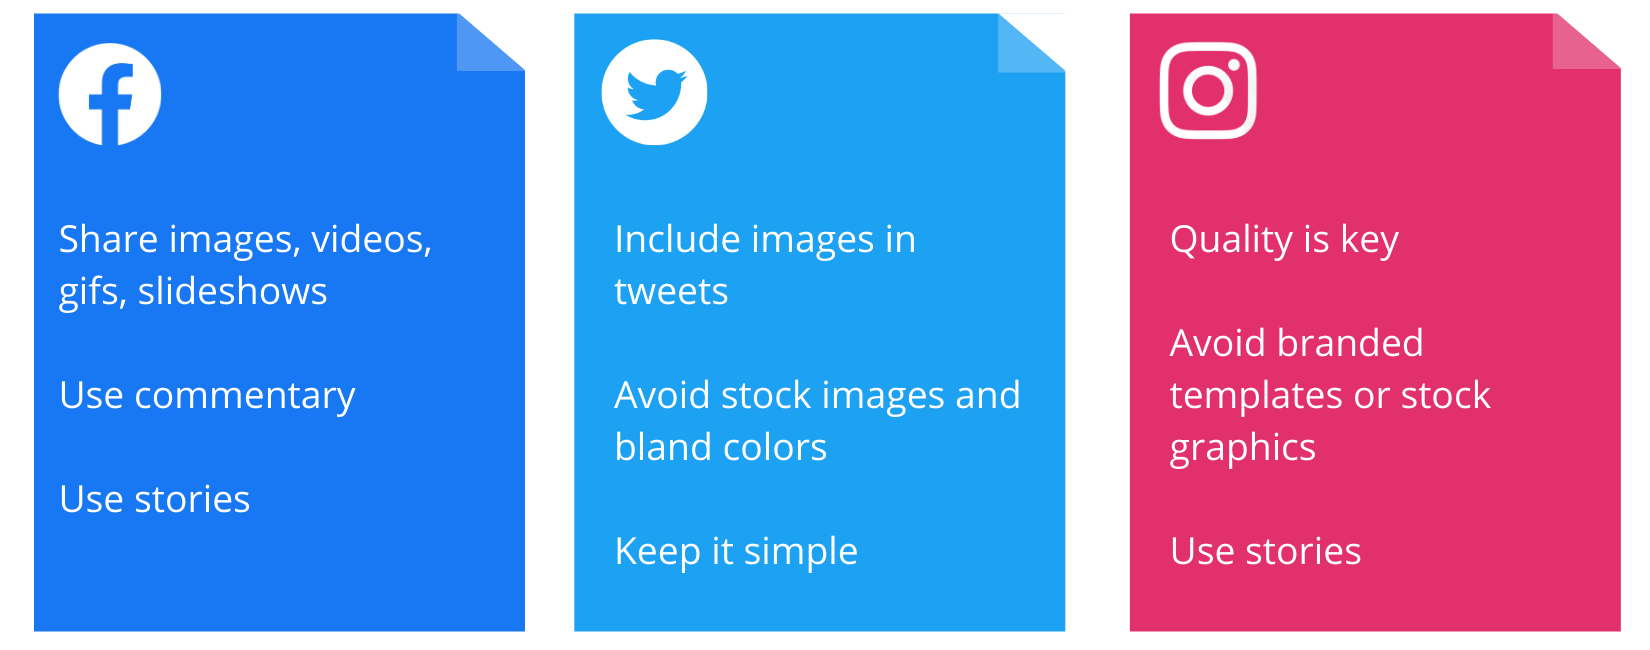 table comparison of facebook twitter instagram best practices for visuals in nonprofit social media strategy